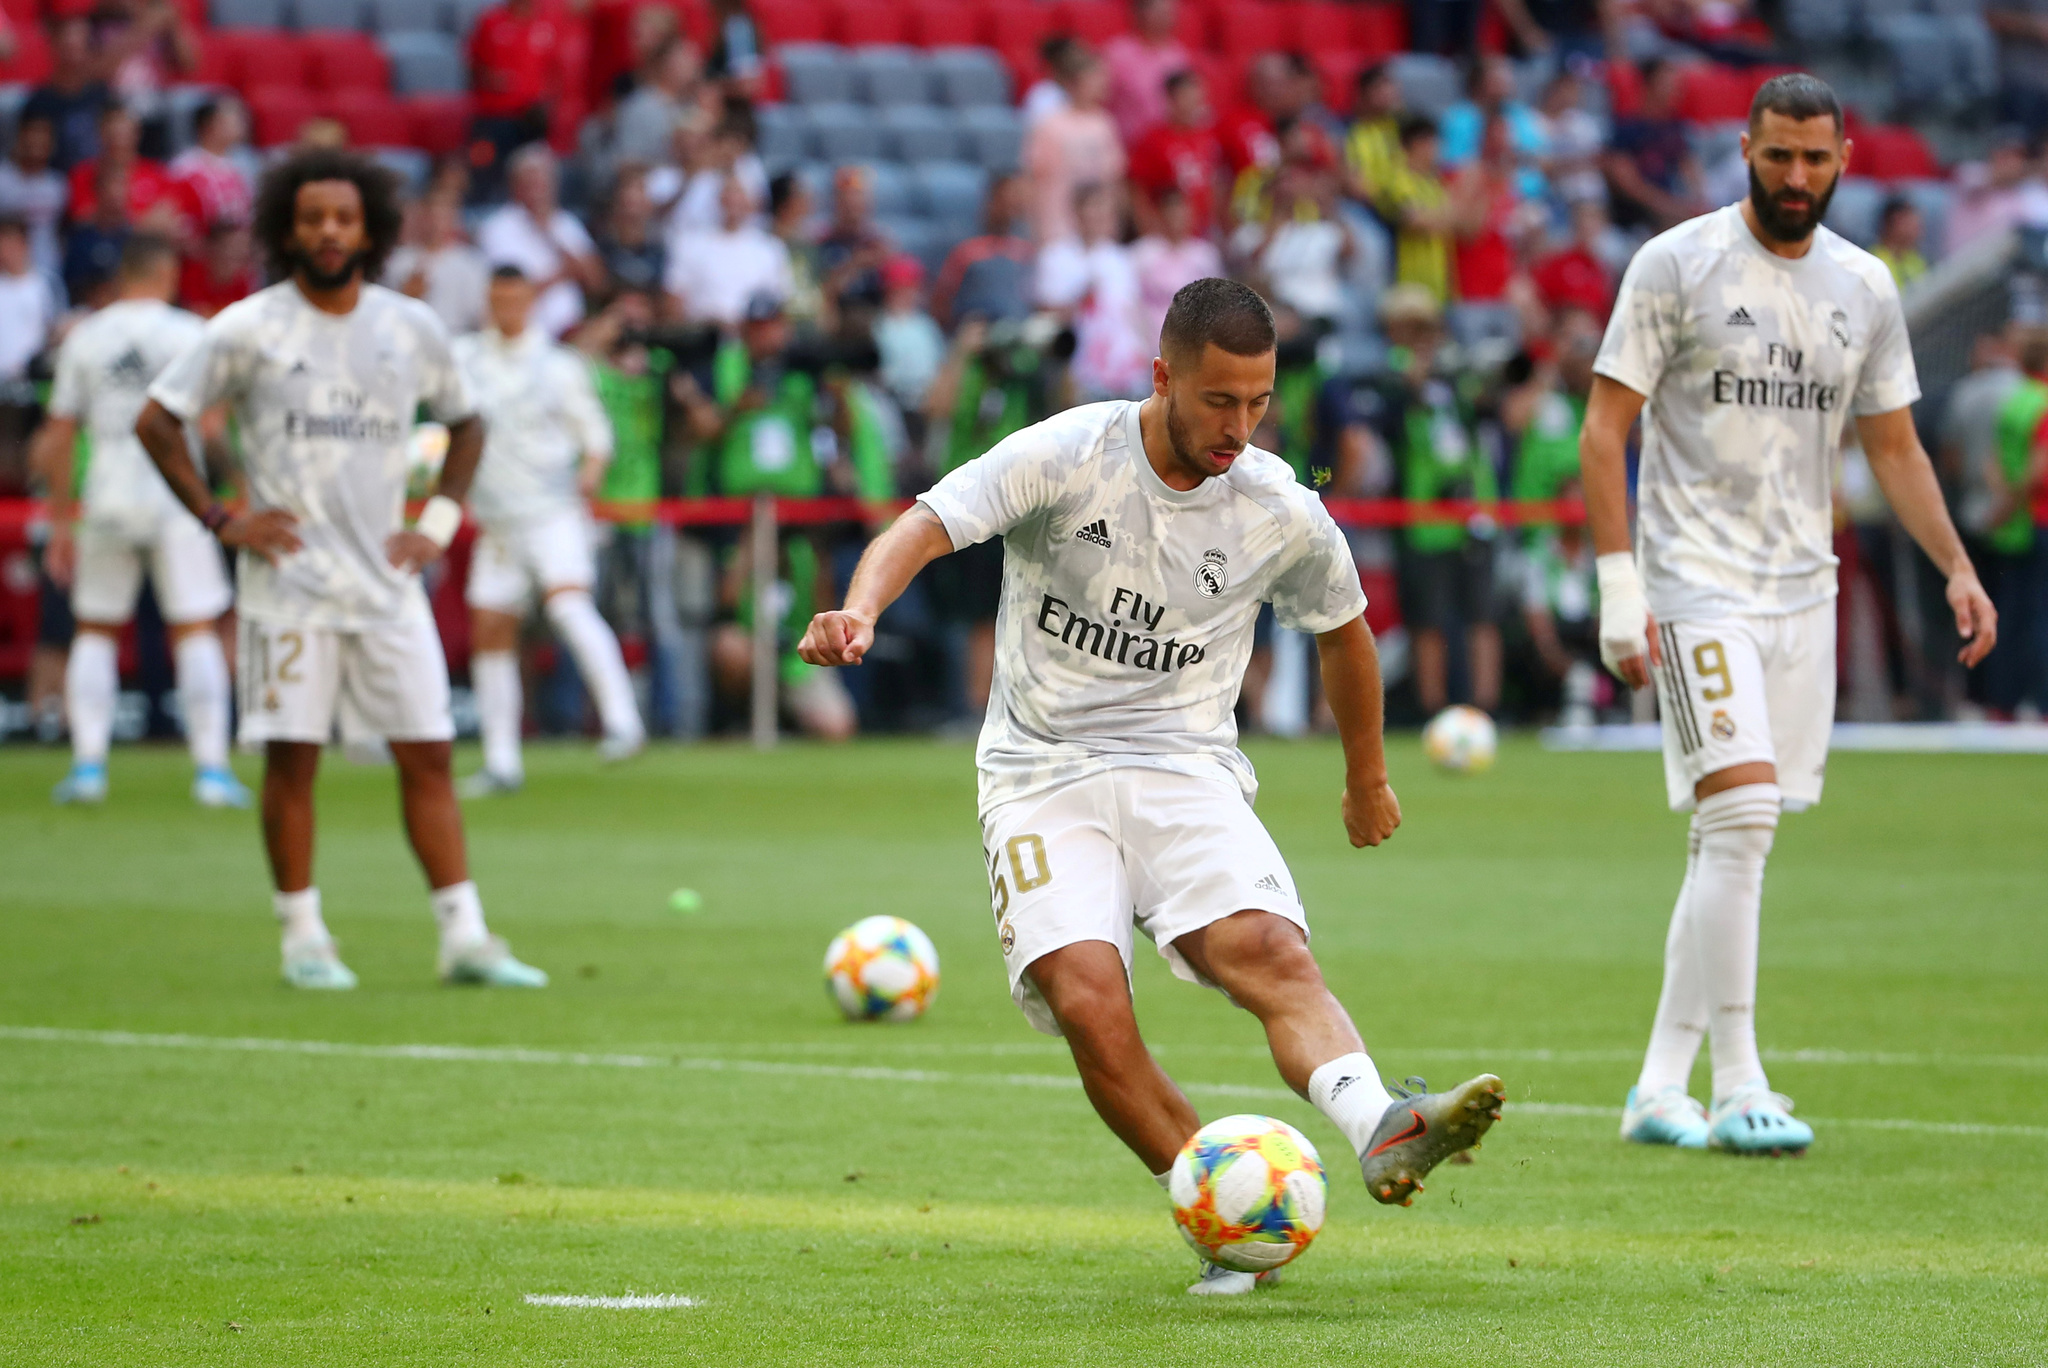 FILE PHOTO: Audi Cup - Real Madrid v Tottenham Hotspur